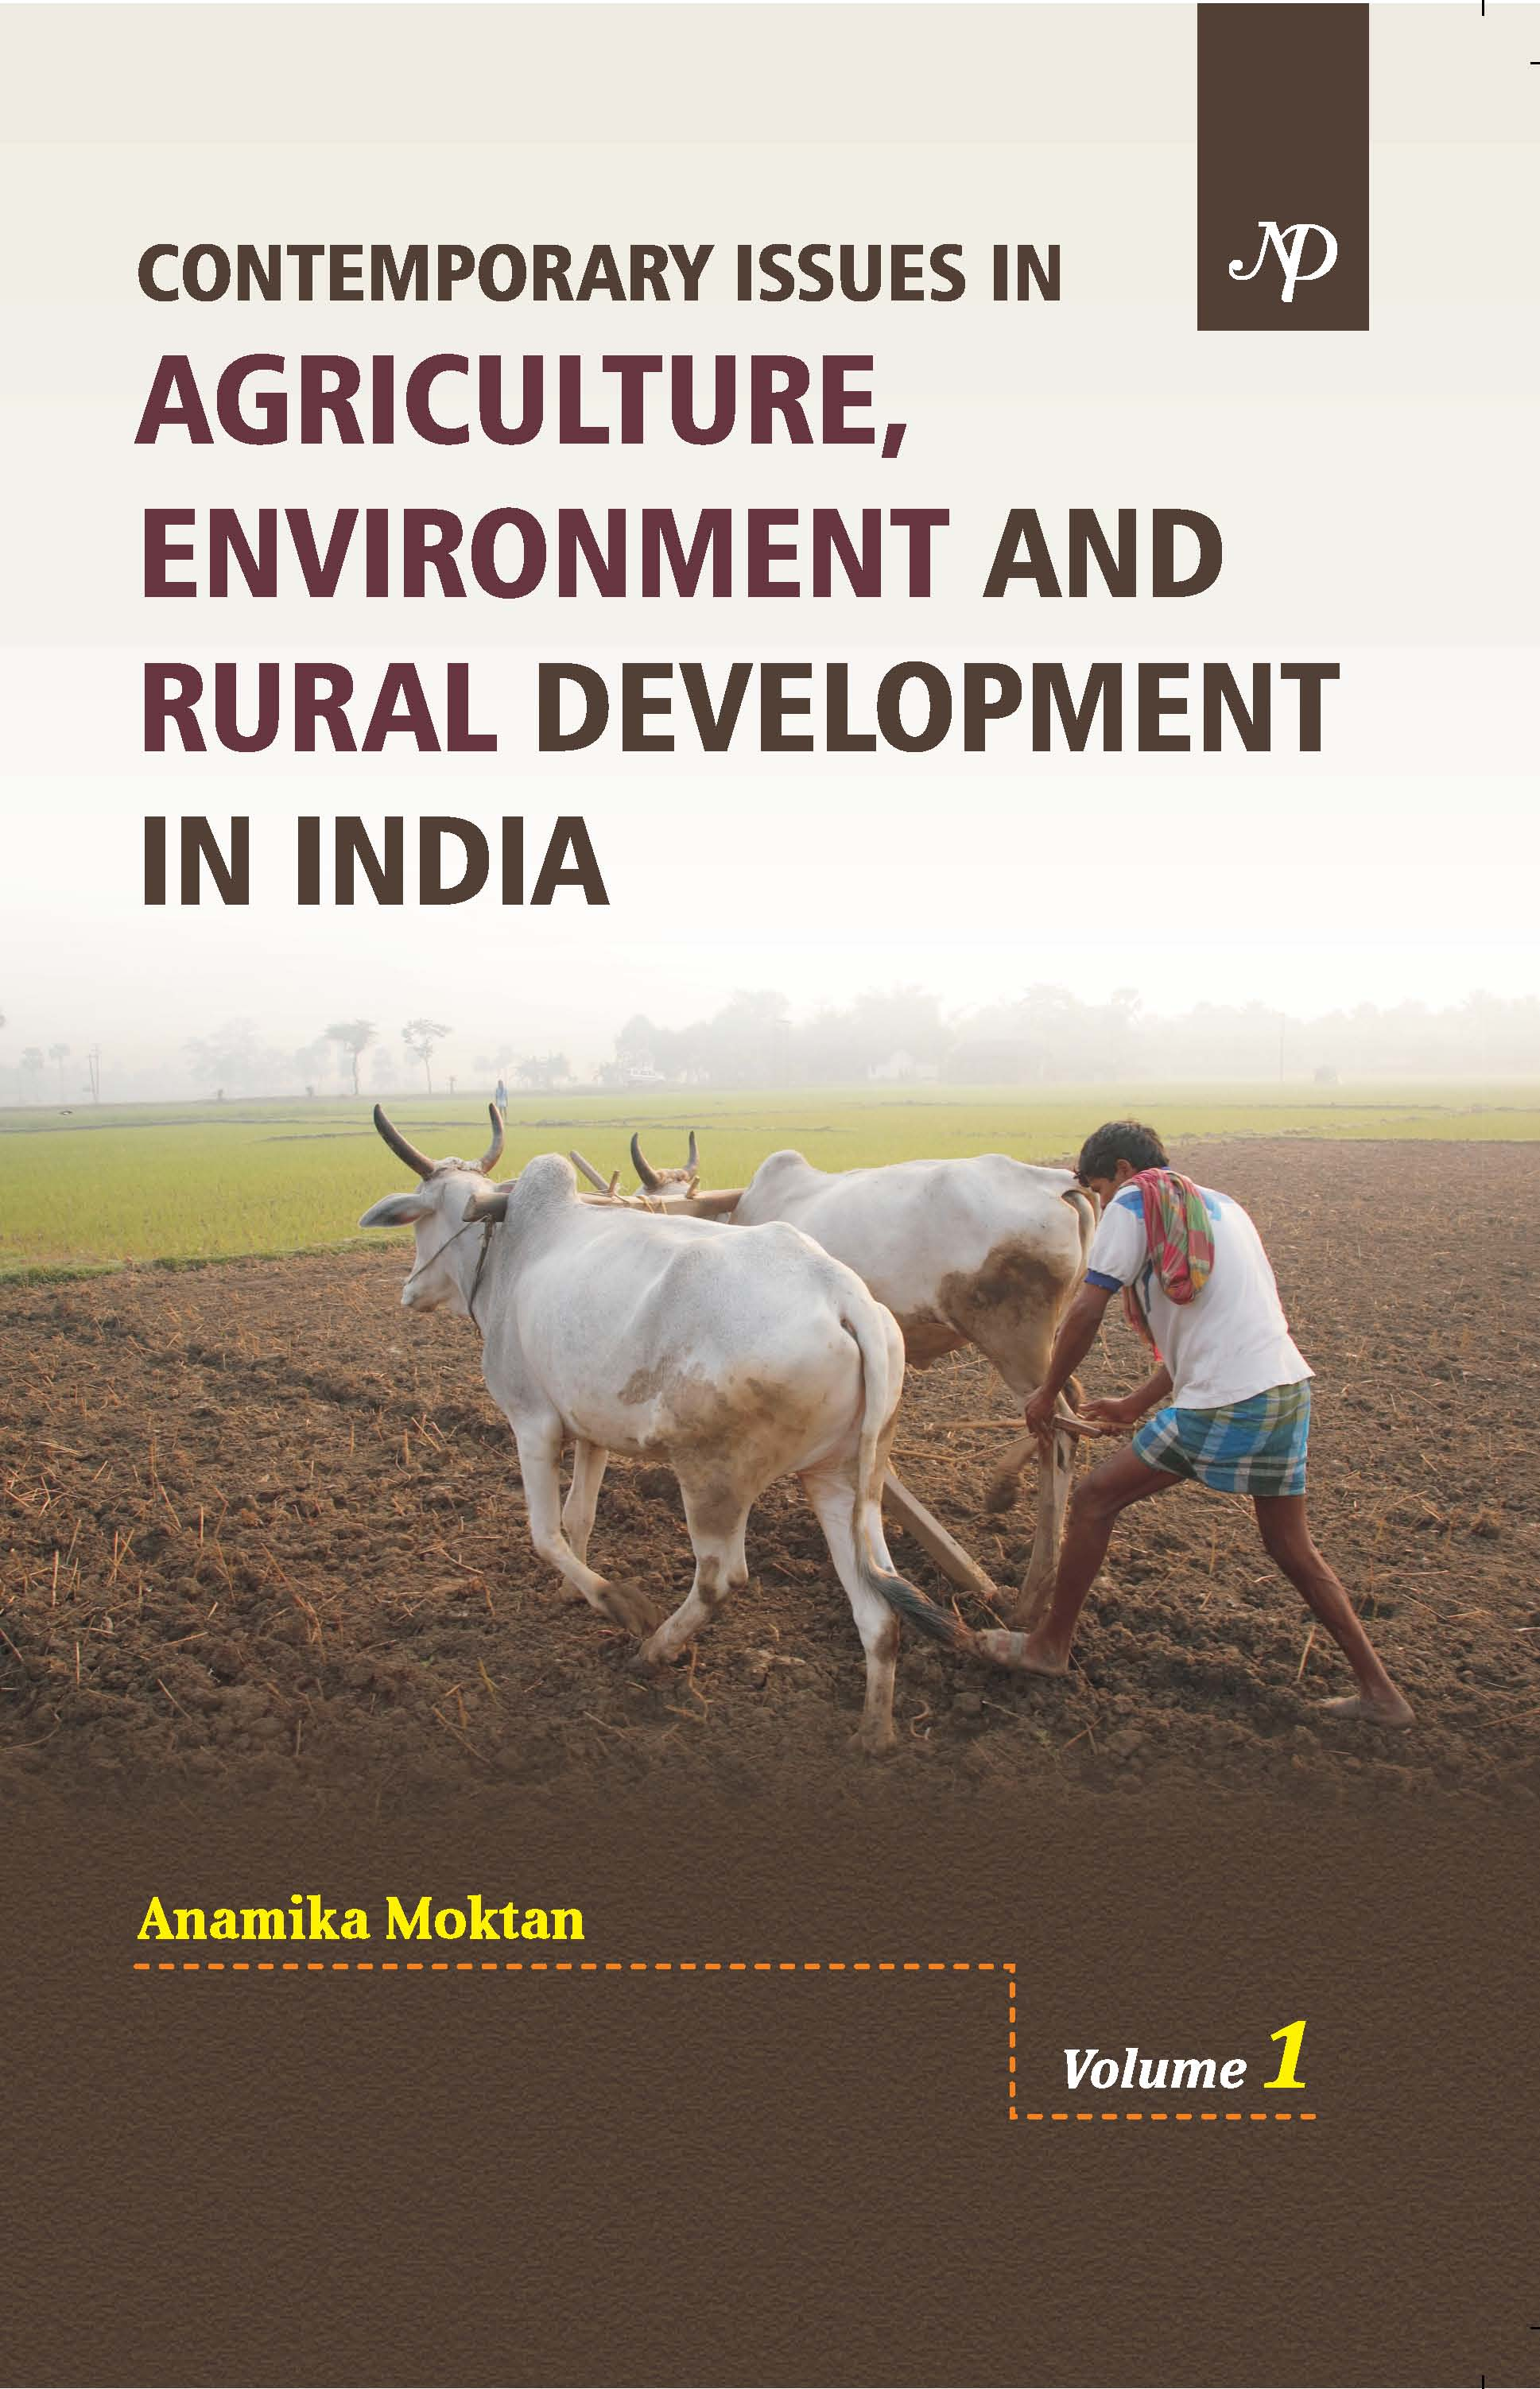 rural development in india F riends, in our last post, discussed about the employment generation programmes of india (you can read that post from here)today we shall discuss about some important rural development programmes of india.